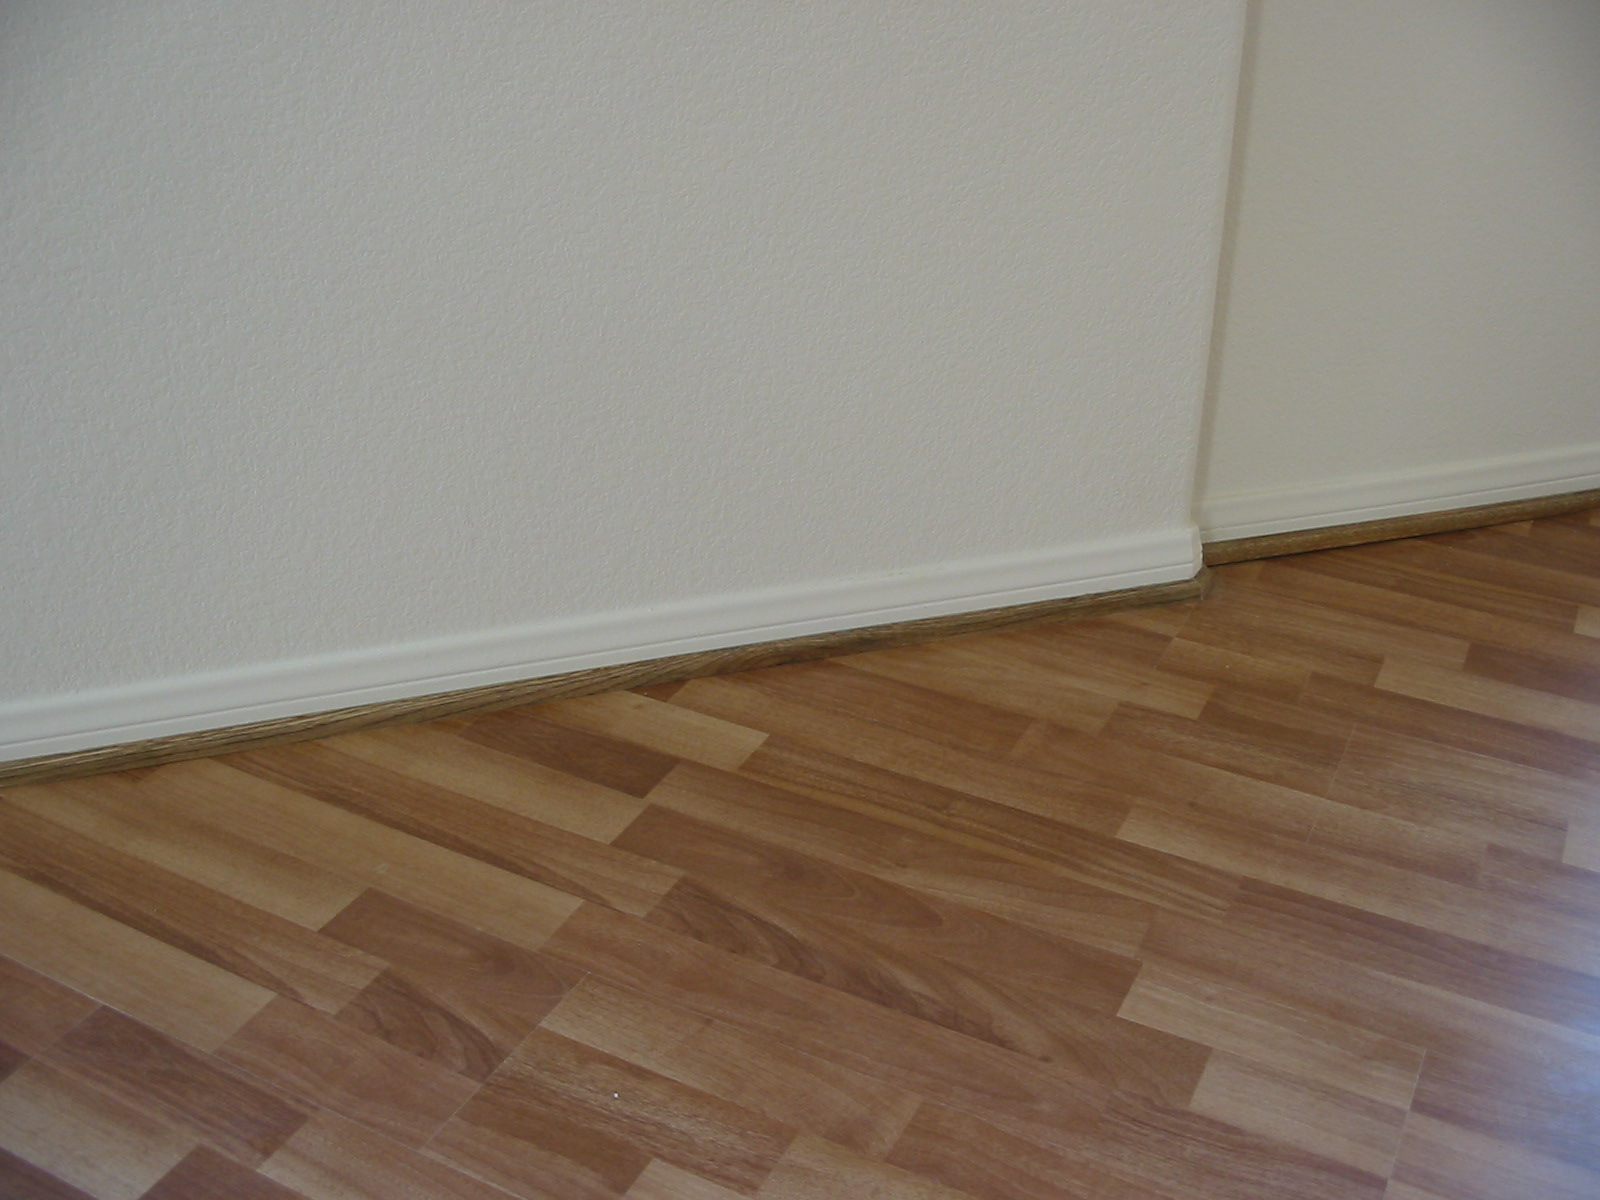 baseboard molding matched with white wall